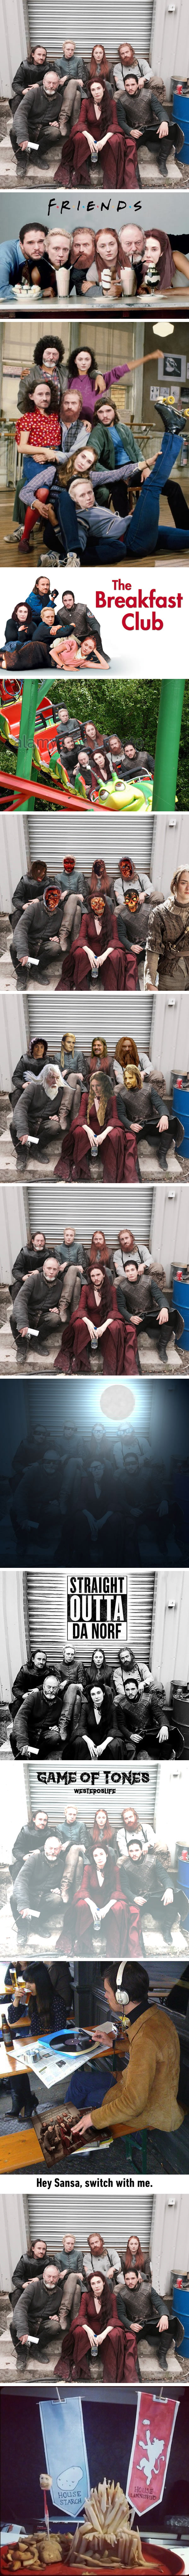 This photo of the Game of Thrones cast deserved to be photoshopped